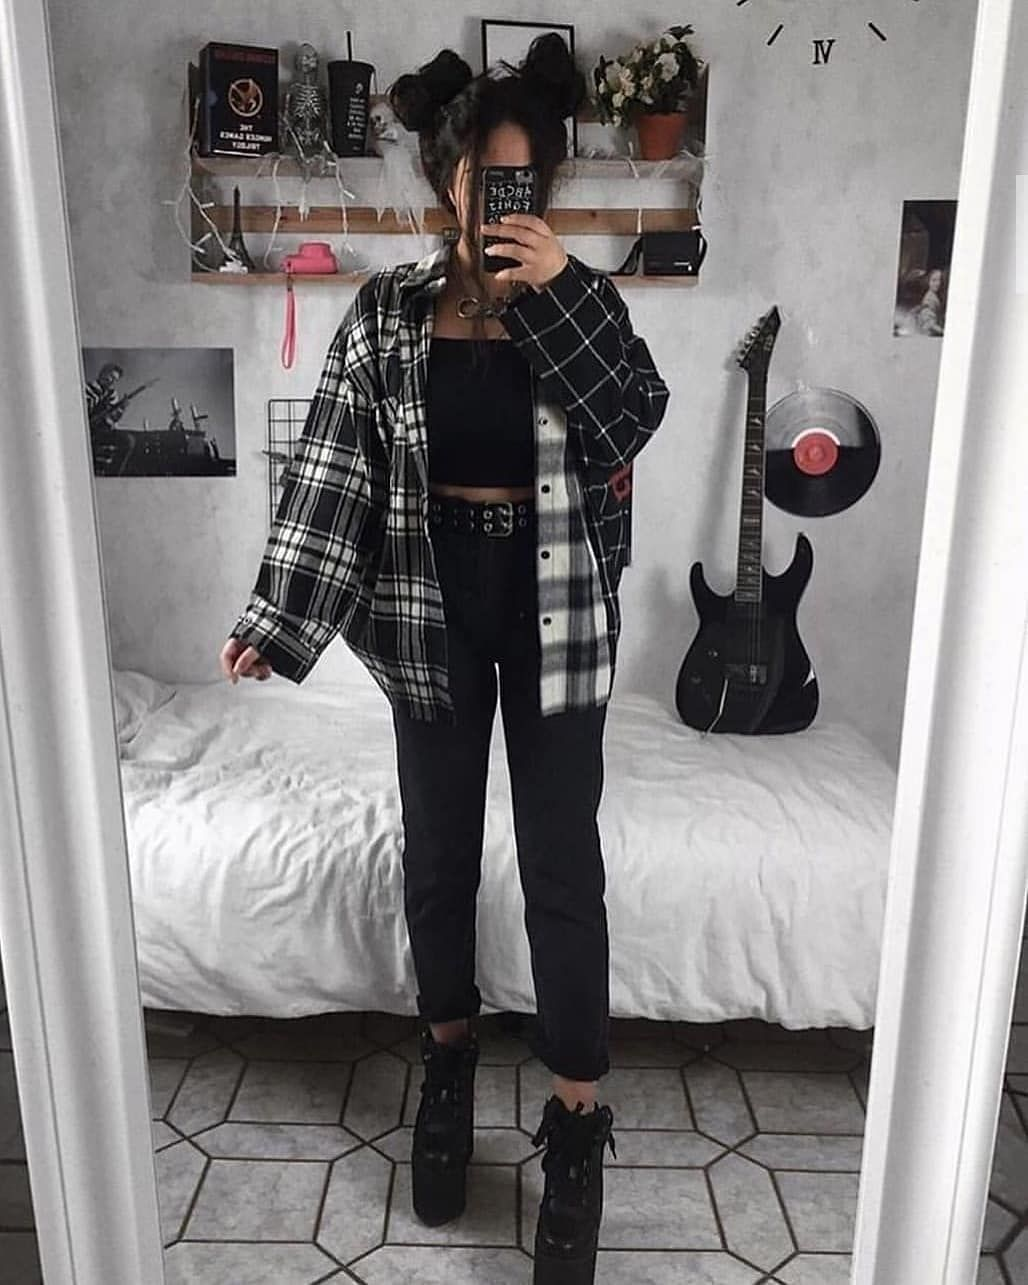 Rock Fashion Grunge Grungeaesthetic Grungefashion Clothes 90sfashion Aesthetic In 2020 Aesthetic Grunge Outfit Aesthetic Clothes Retro Outfits